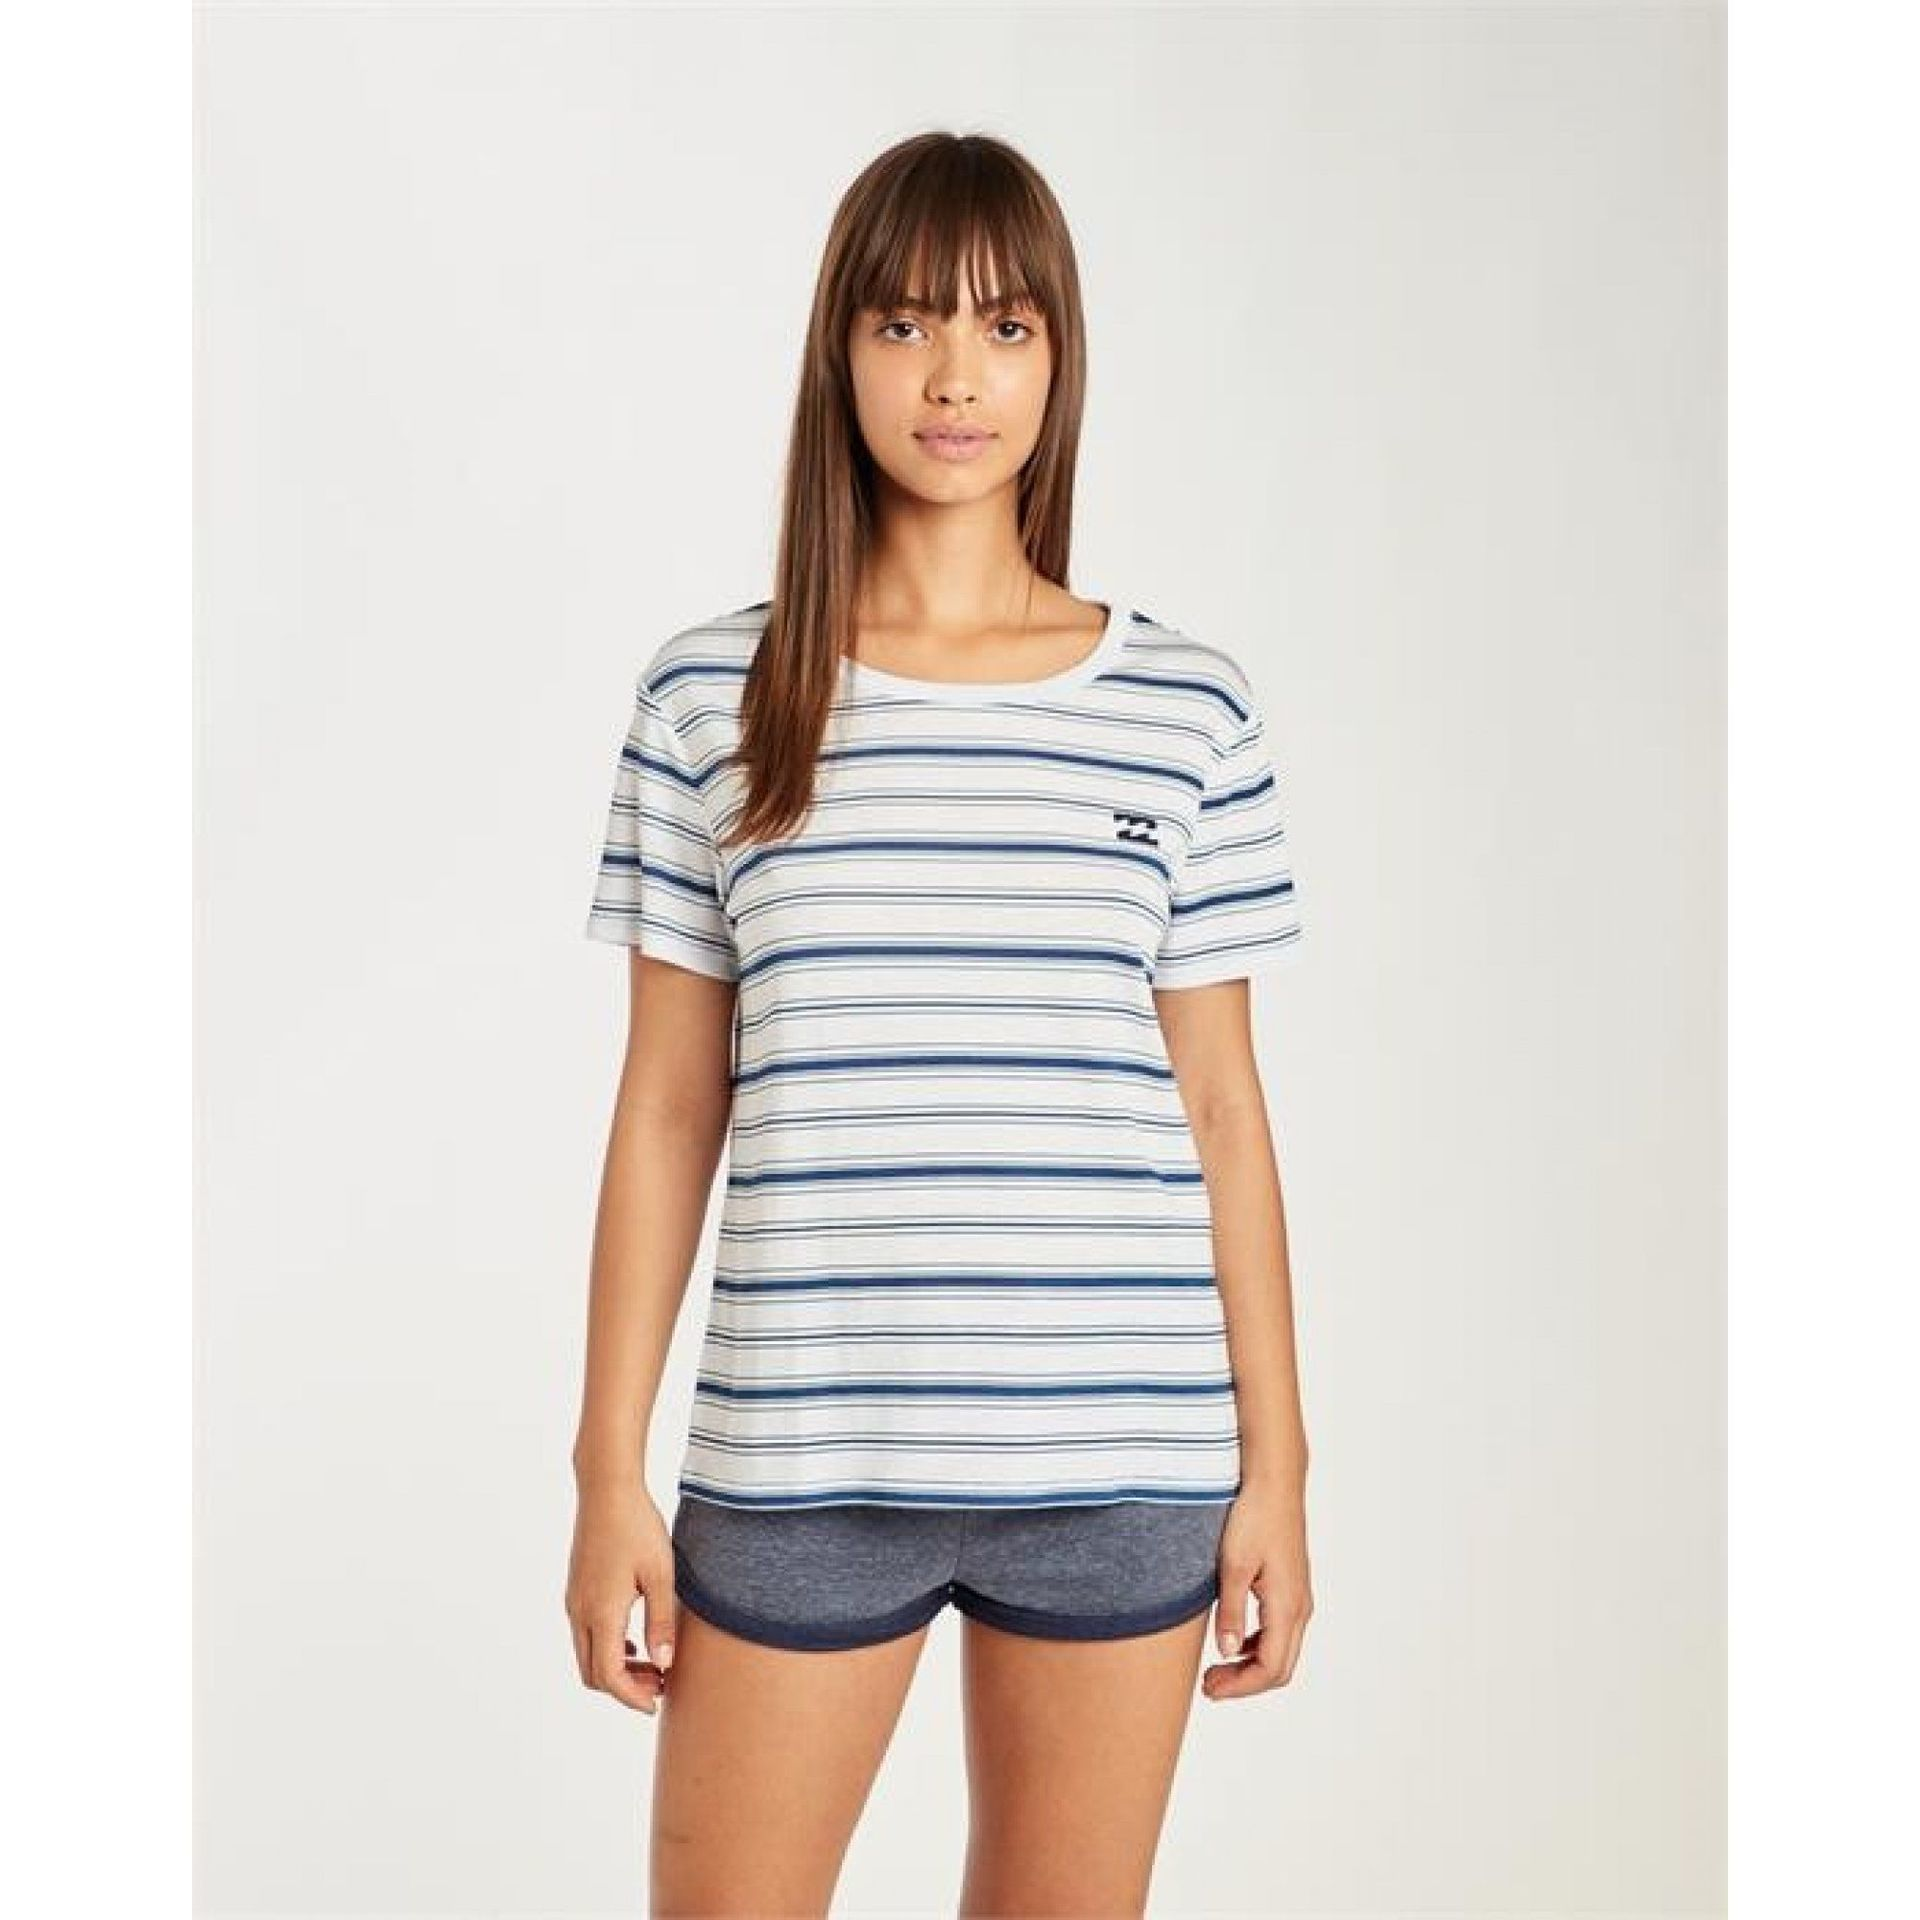 KOSZULKA BILLABONG BEACH DAY BLUE STRIPES